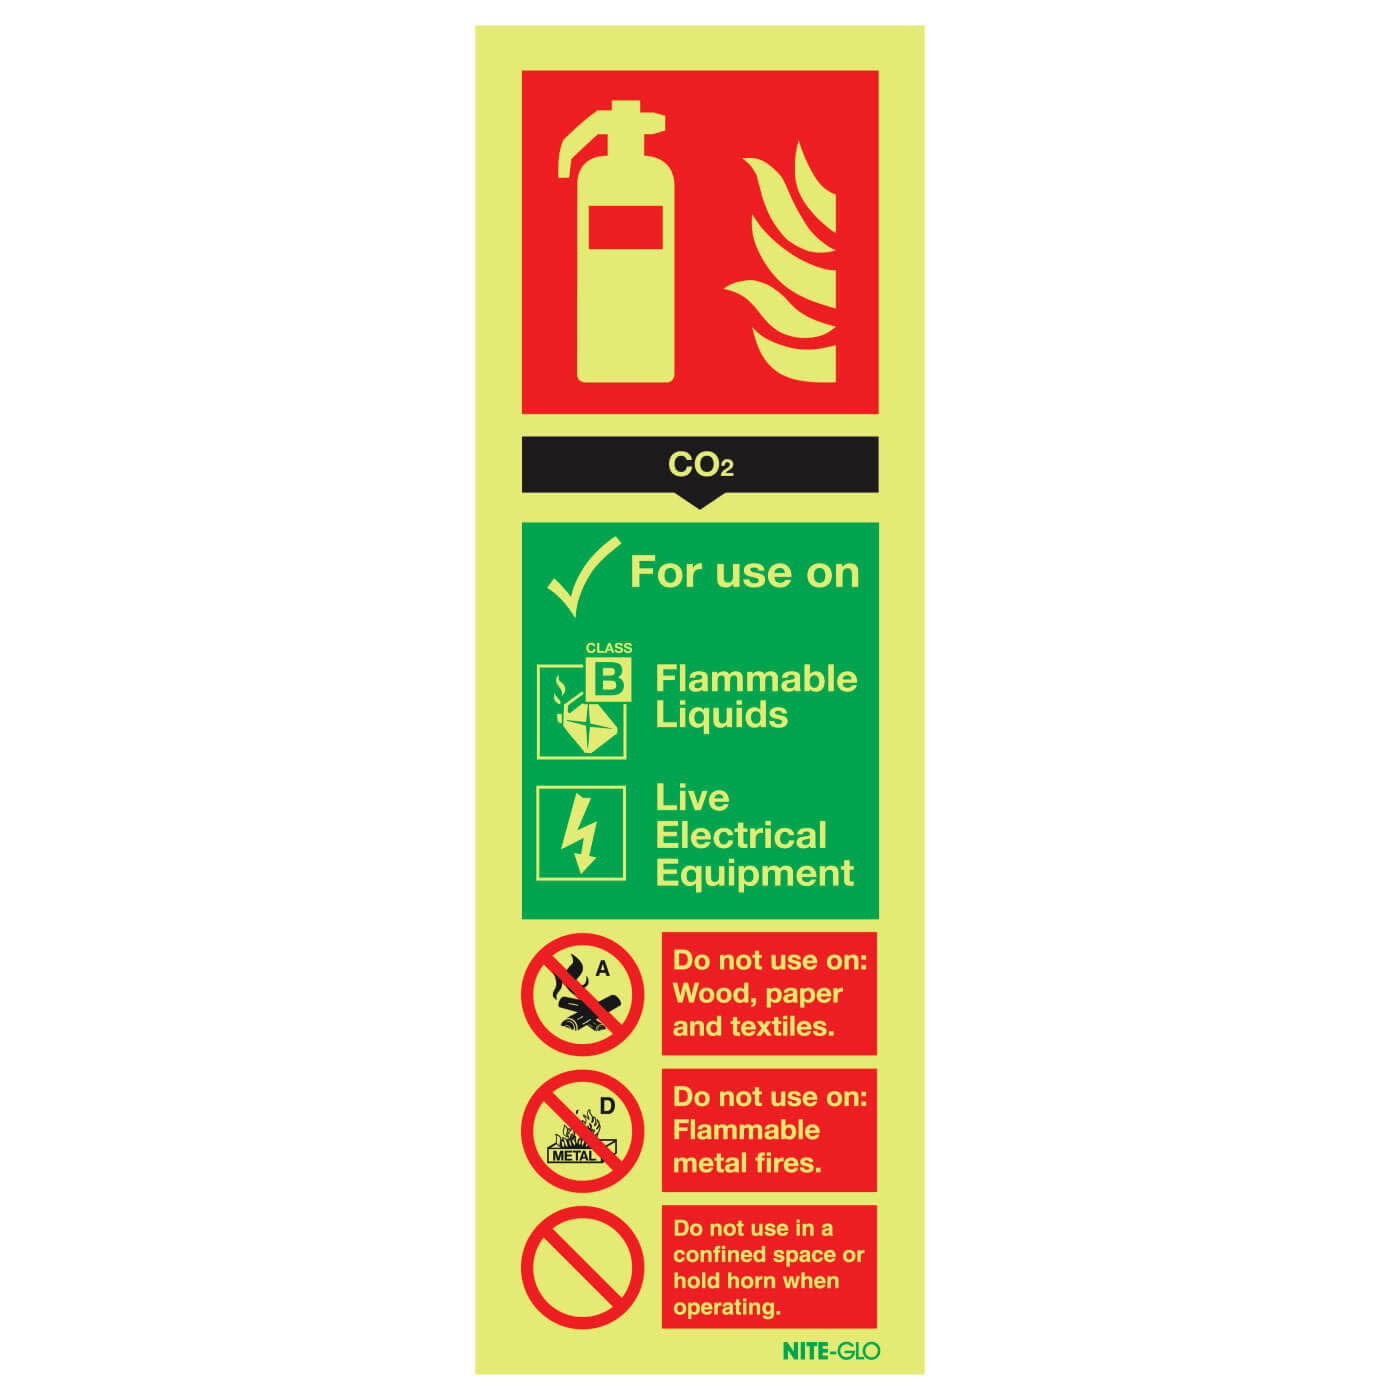 NITE-GLO CO2 Extinguisher - 300 x 100mm)